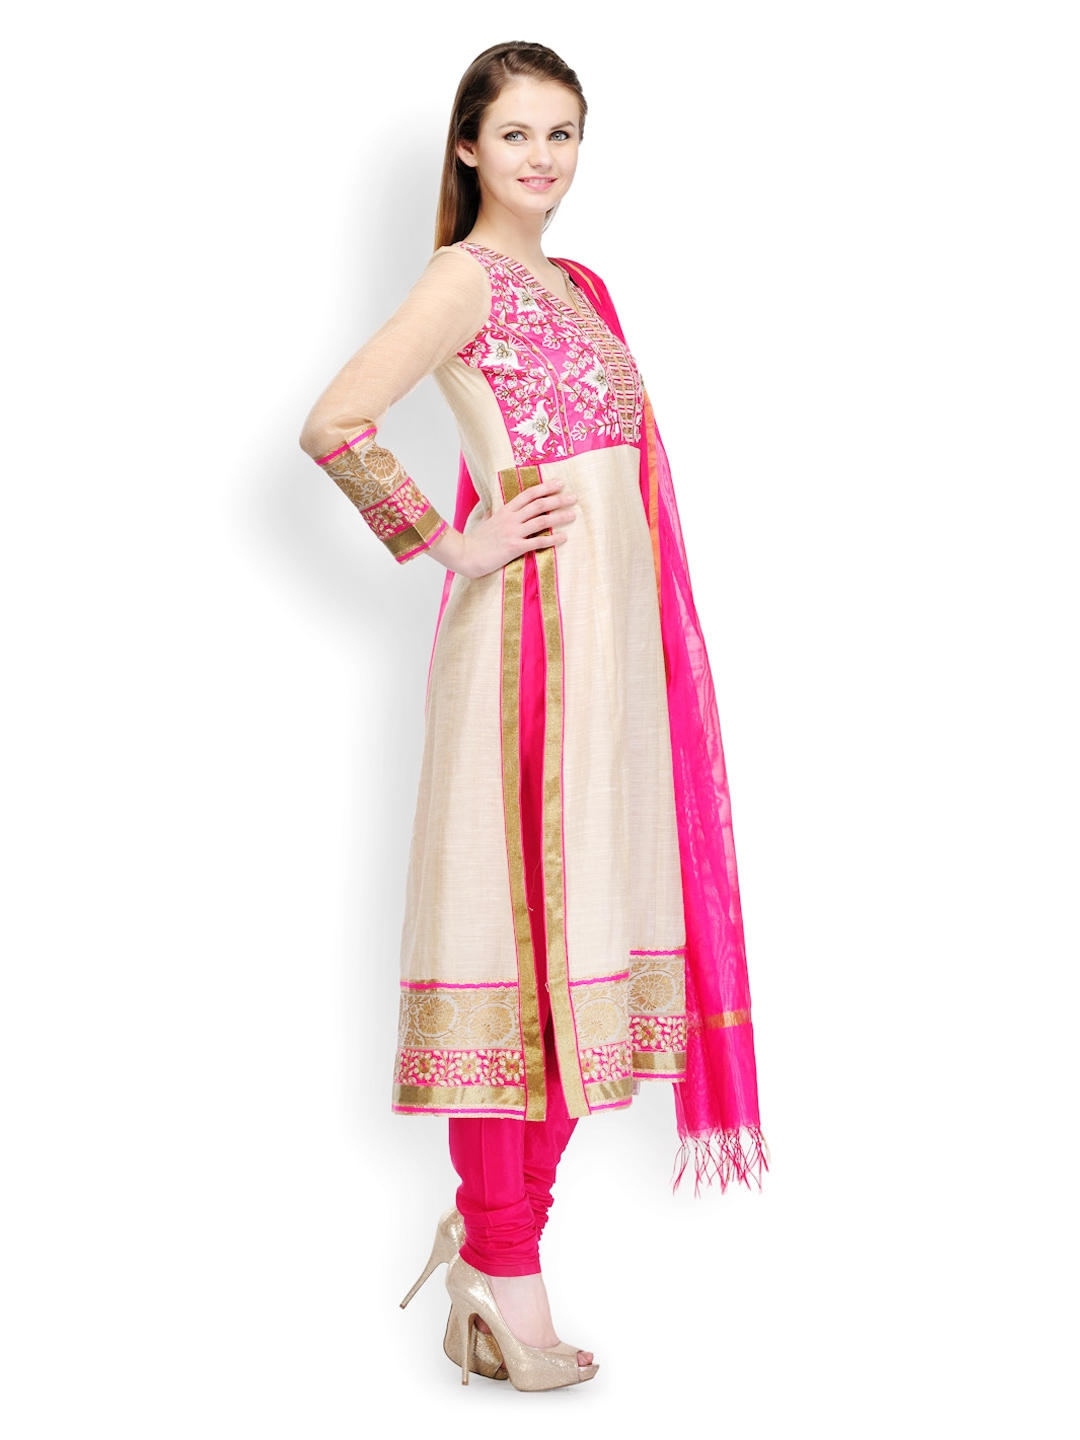 myntra sia fashion women off white pink embroidered chanderi silk churidar kurta with dupatta. Black Bedroom Furniture Sets. Home Design Ideas